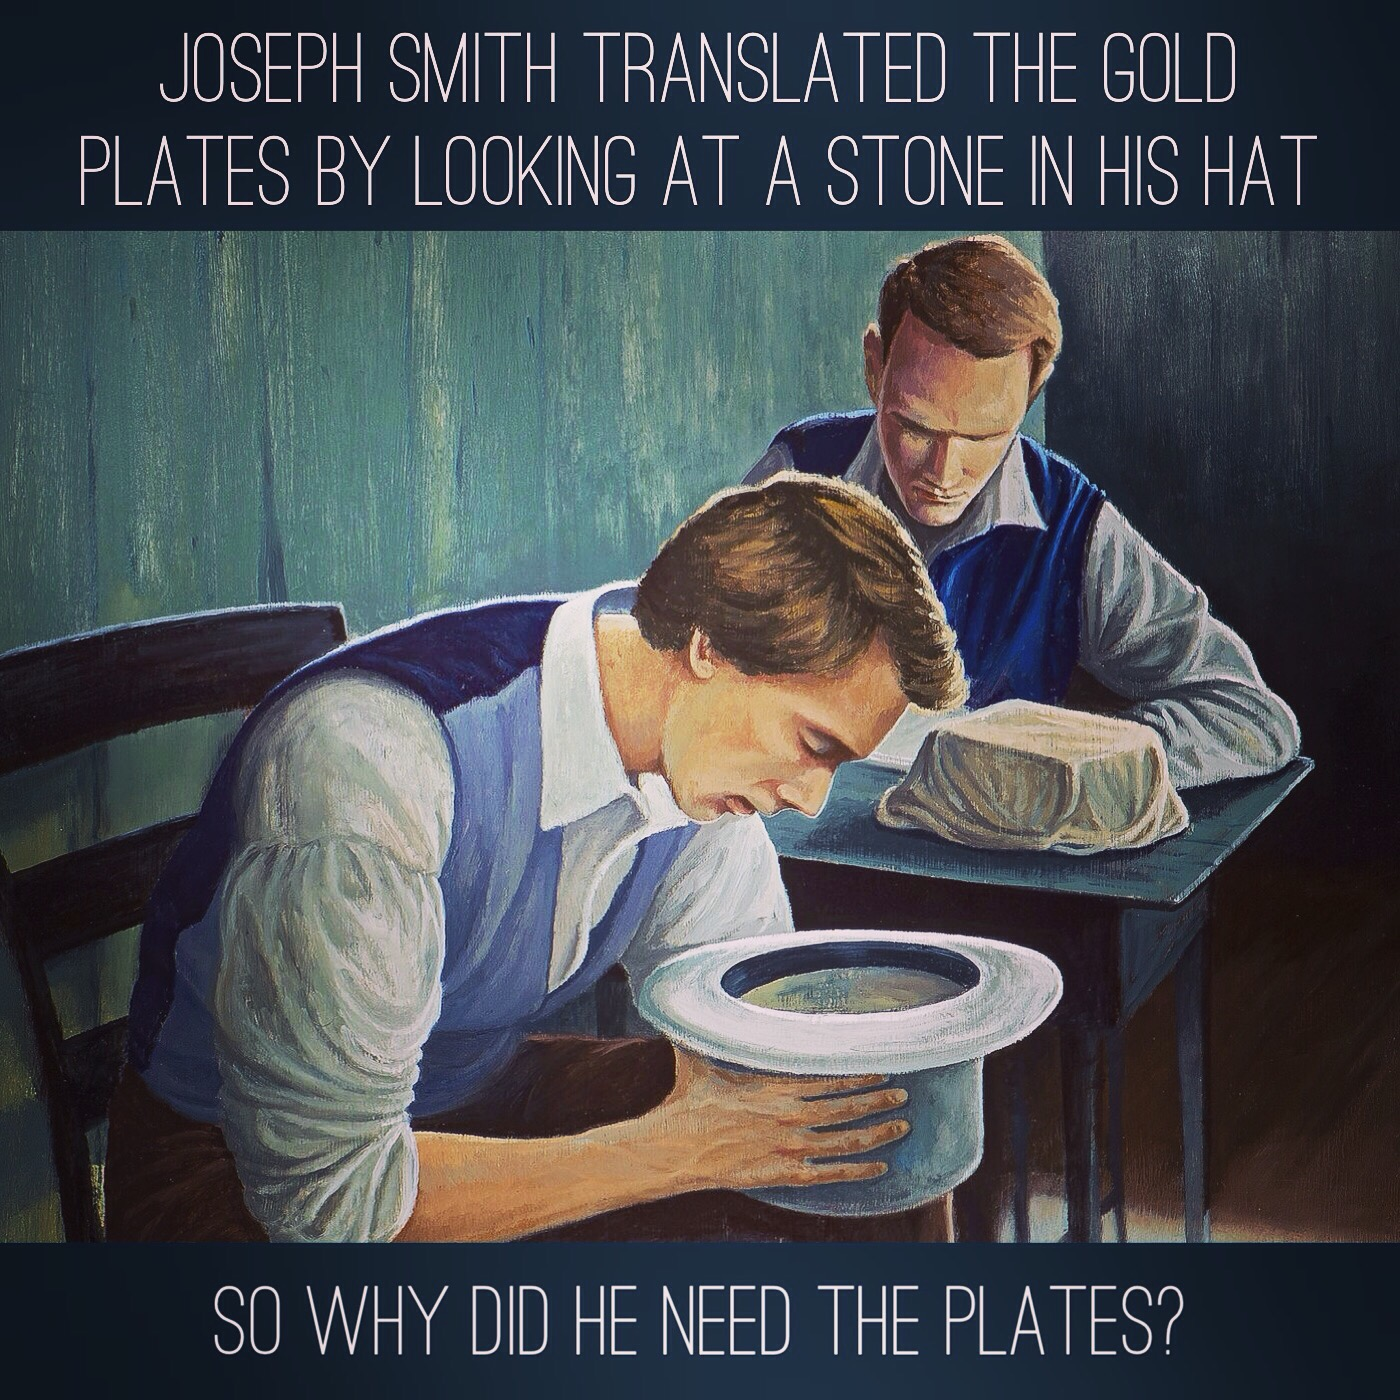 What are the plates for?